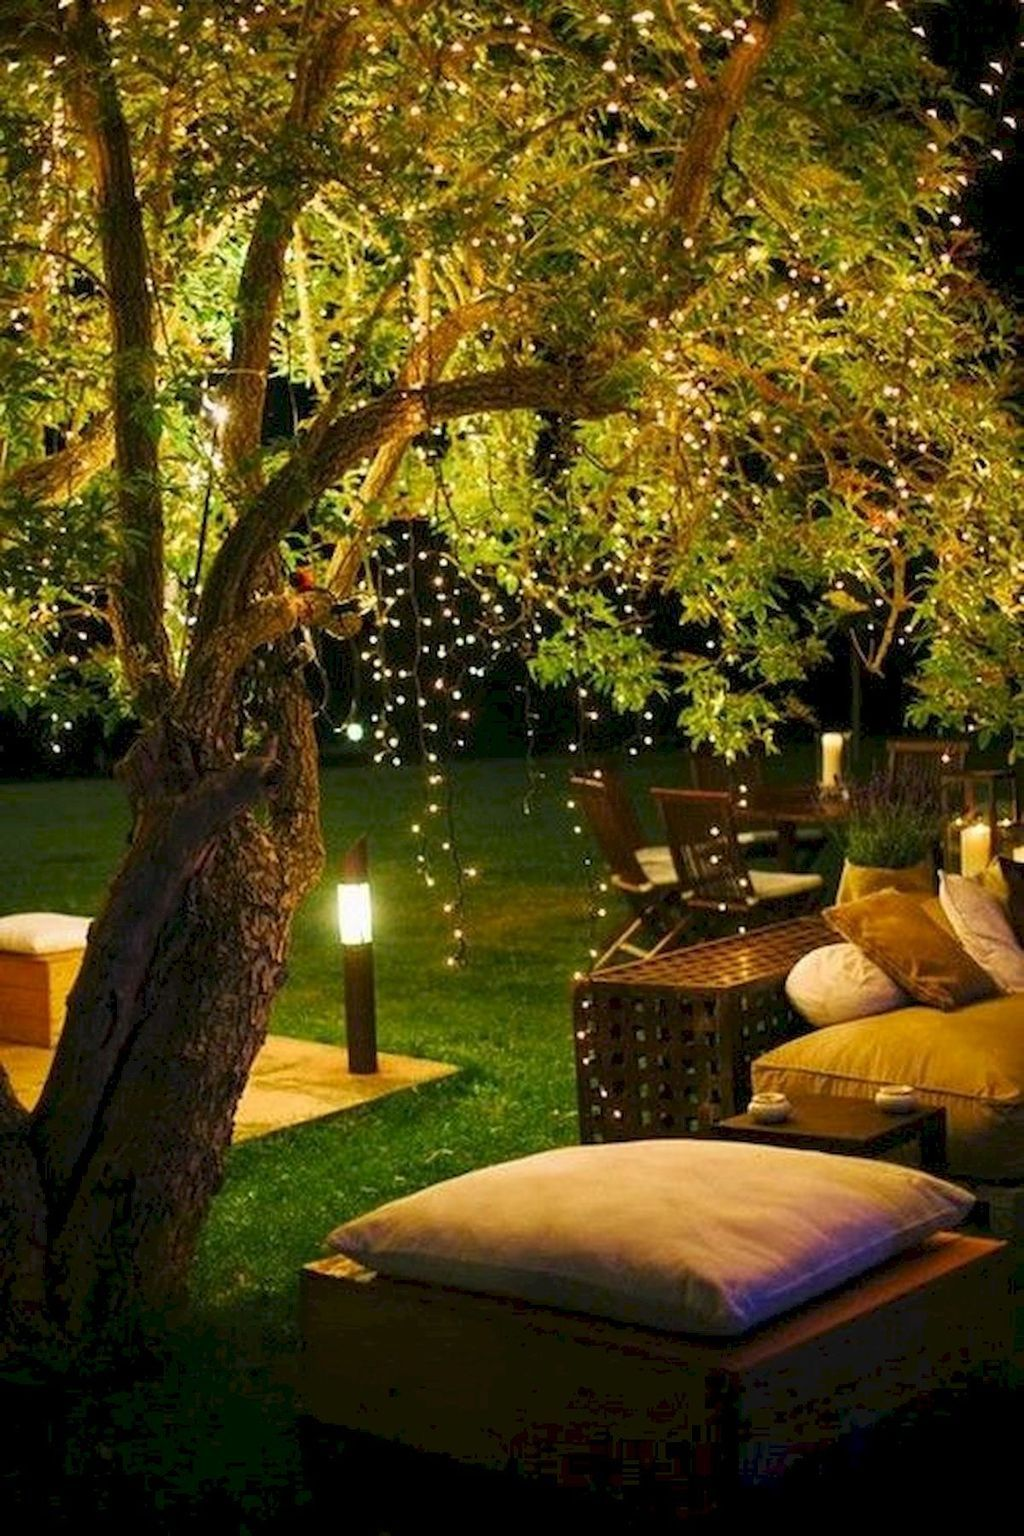 30 Marvelous Garden Lighting Design Ideas 30 Marvelous Garden Lighting Design In 2020 Garden Lighting Design Outdoor Decorative Lights Backyard Garden Design